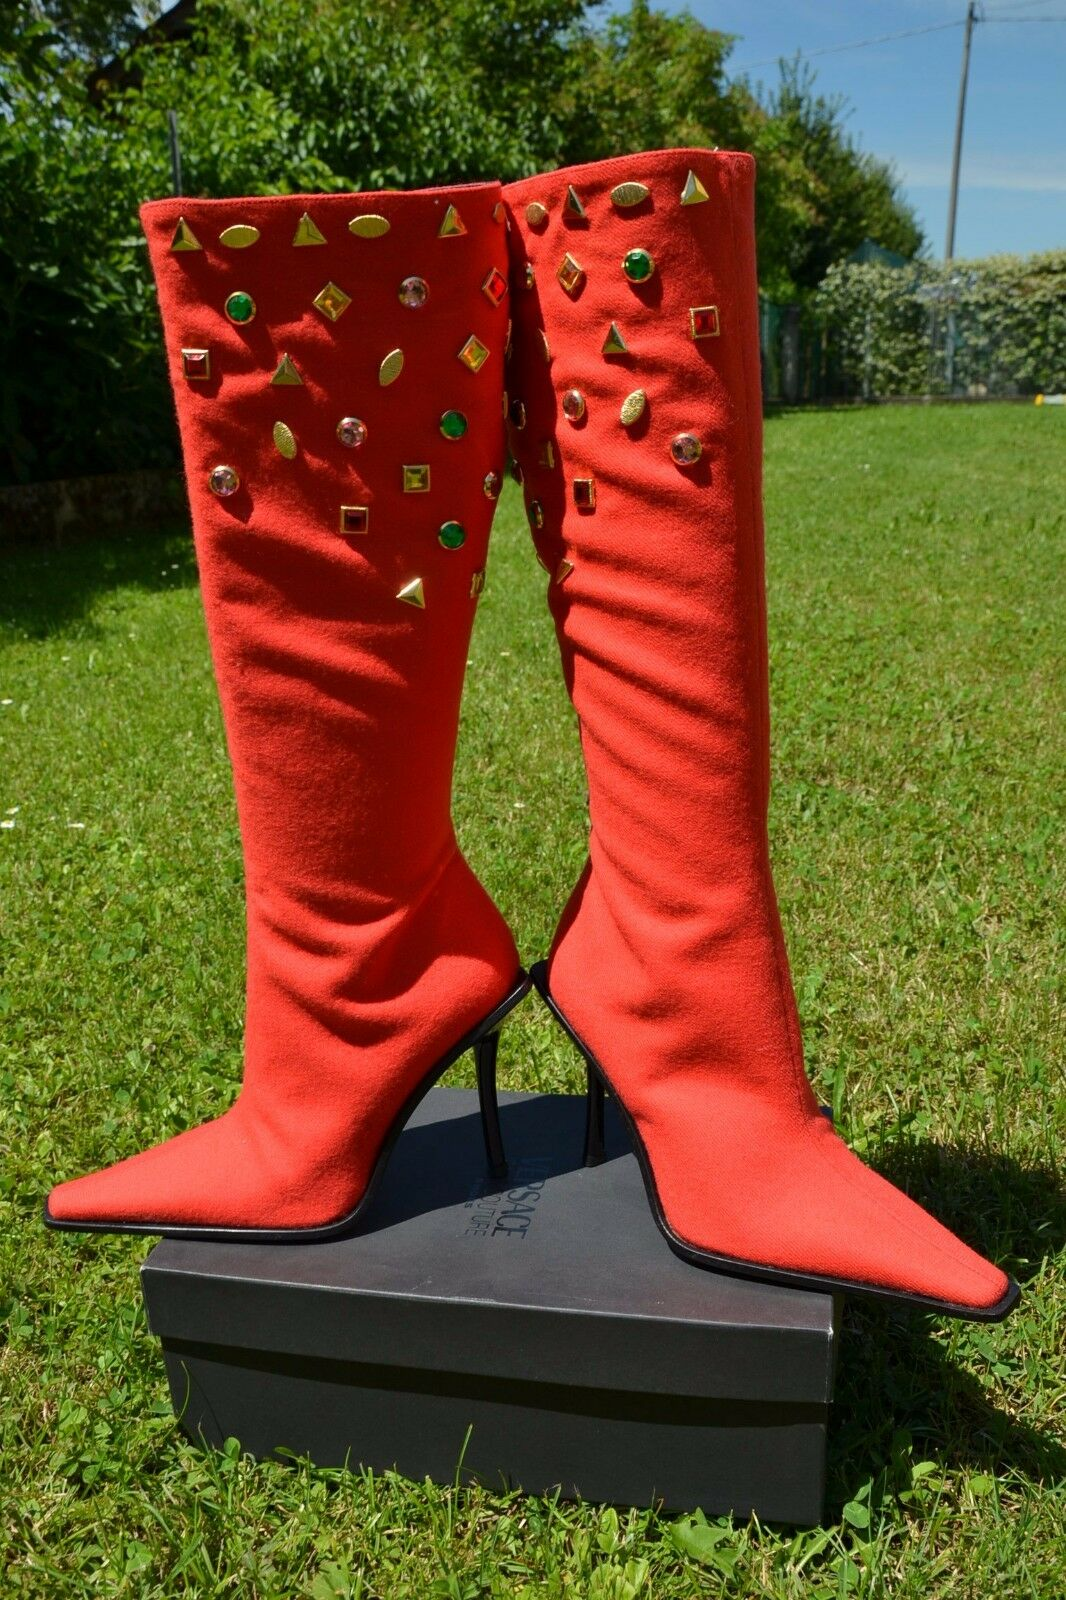 VERSACE VERSACE VERSACE New Vtg Sold out Runway Jewel Lux High Heel Wool Stiefel Schuhes sz 36 UK 3 d2e649